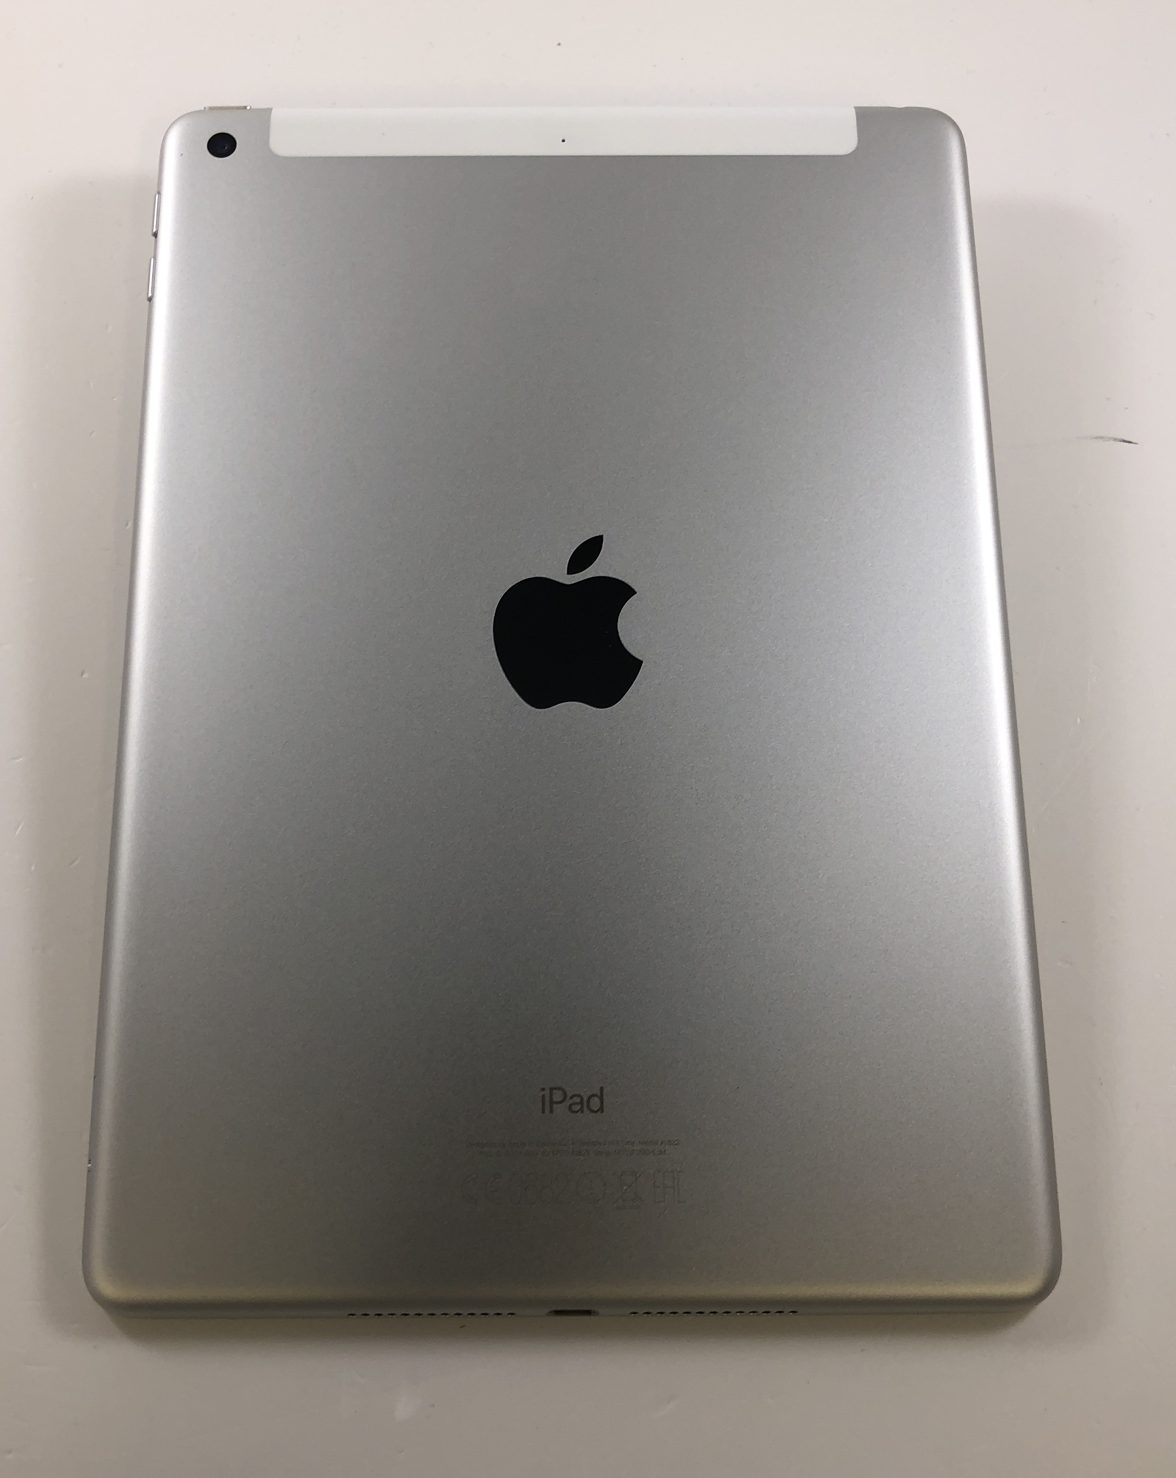 iPad 5 Wi-Fi + Cellular 128GB, 128GB, Silver, image 2